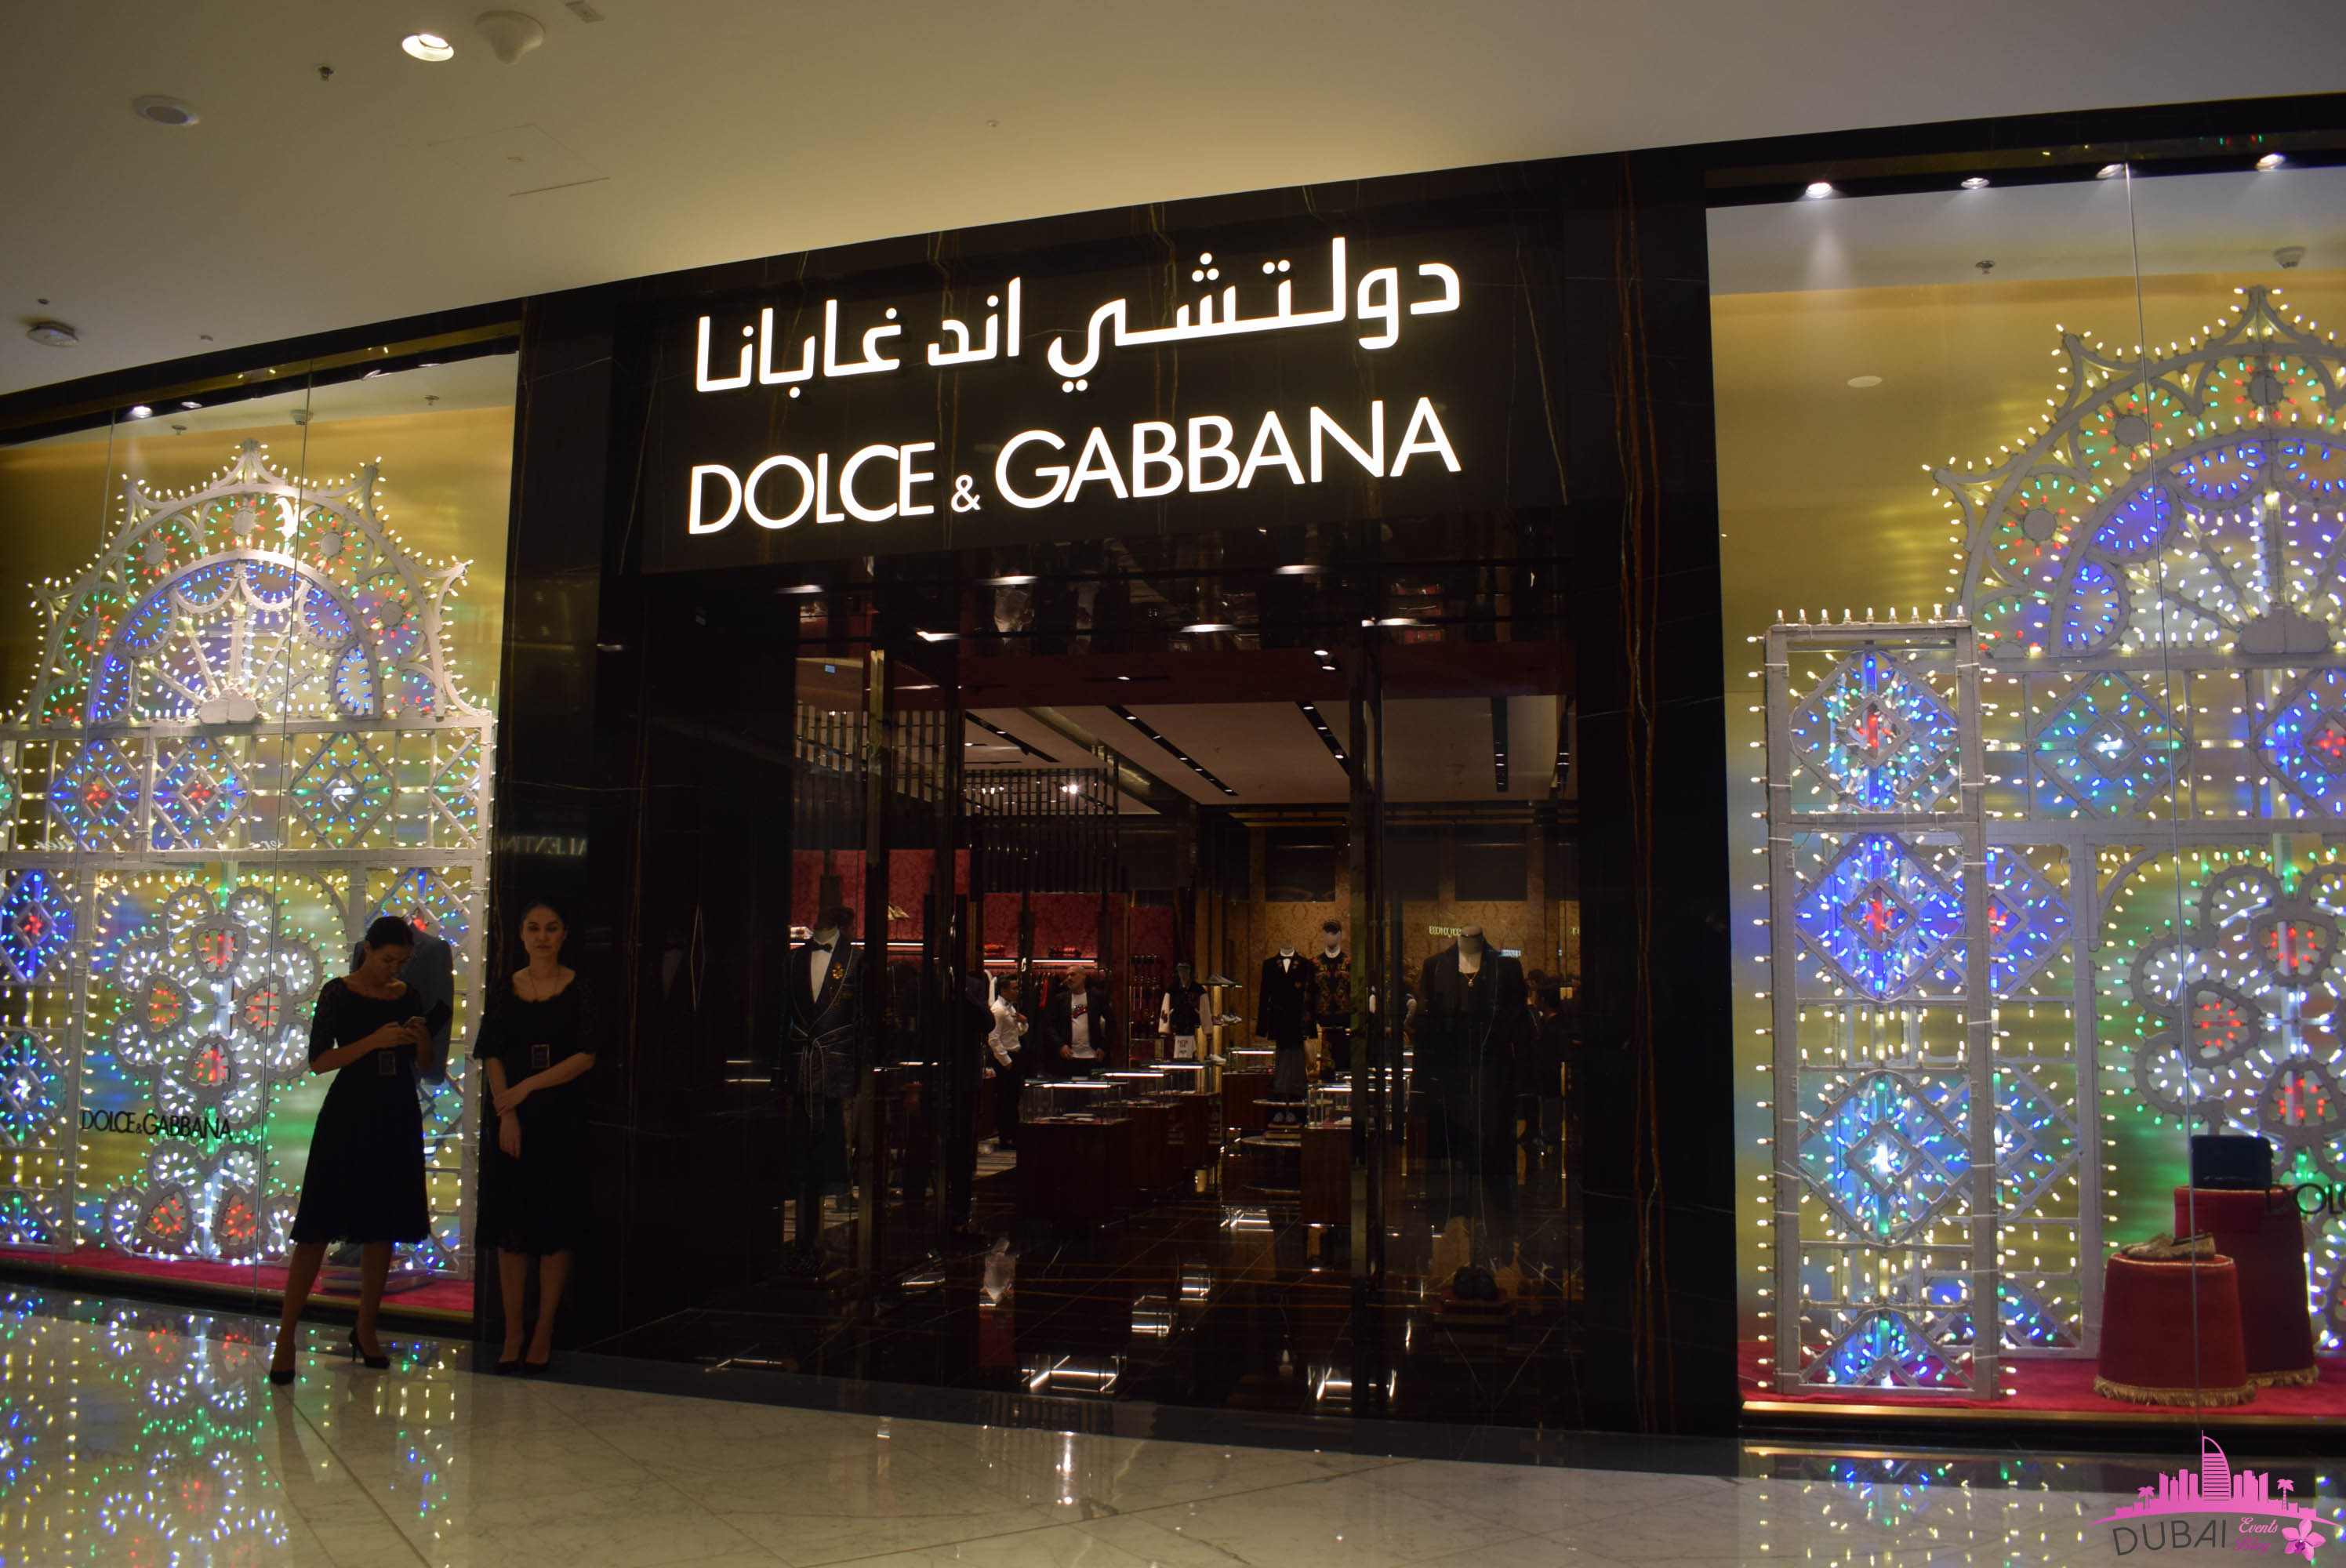 6a257695f36b Dolce & Gabbana Fashion Catwalk @ The Dubai Mall New Boutique on 7th  October 2018